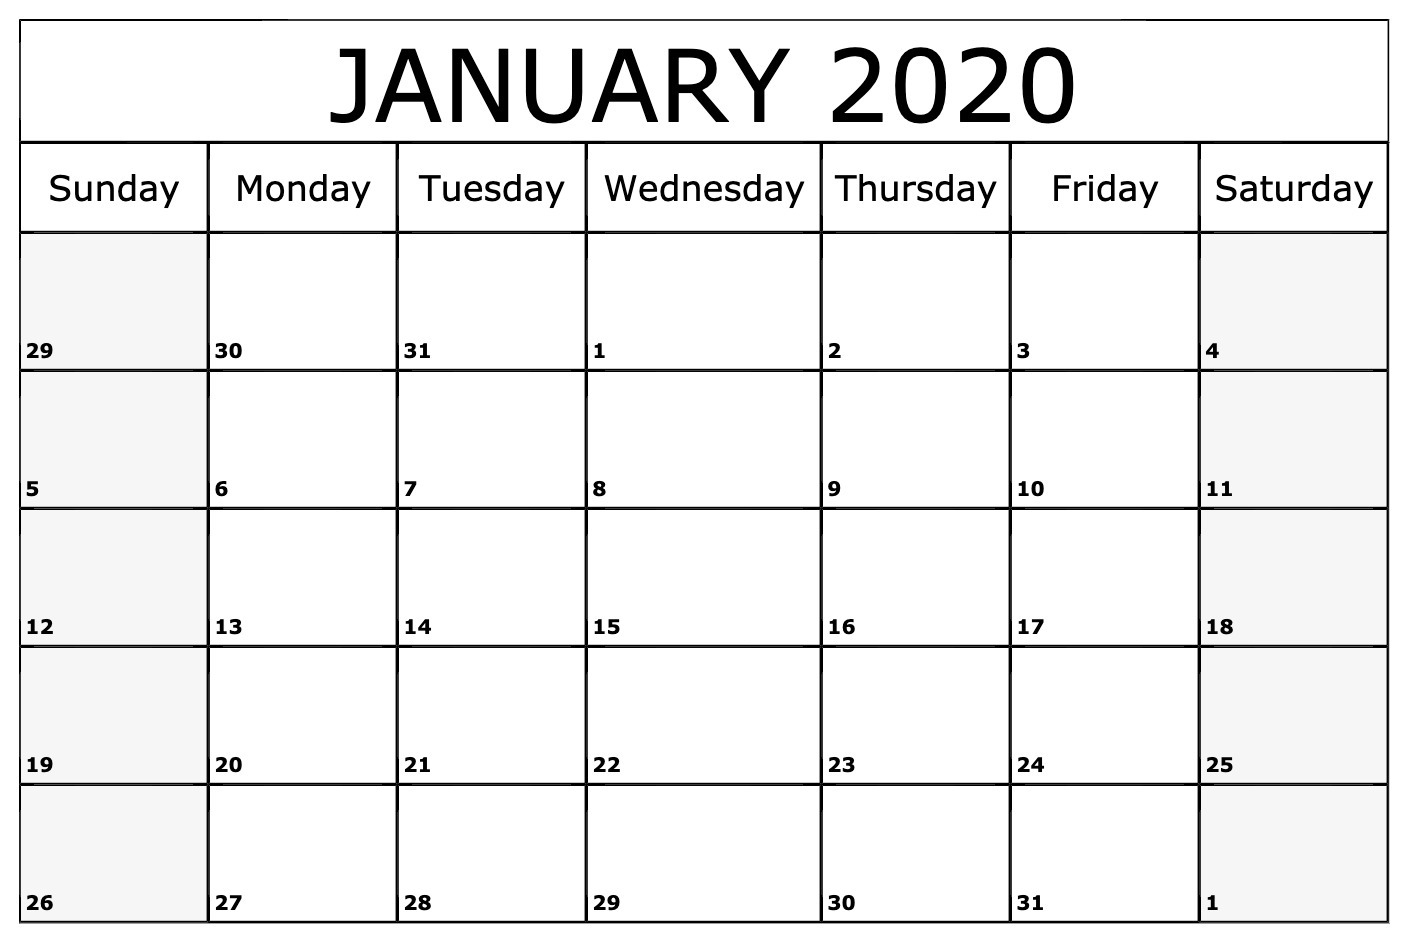 January 2020 Calendar Printable Template In Pdf Word Excel for Blank Calendar Template Word